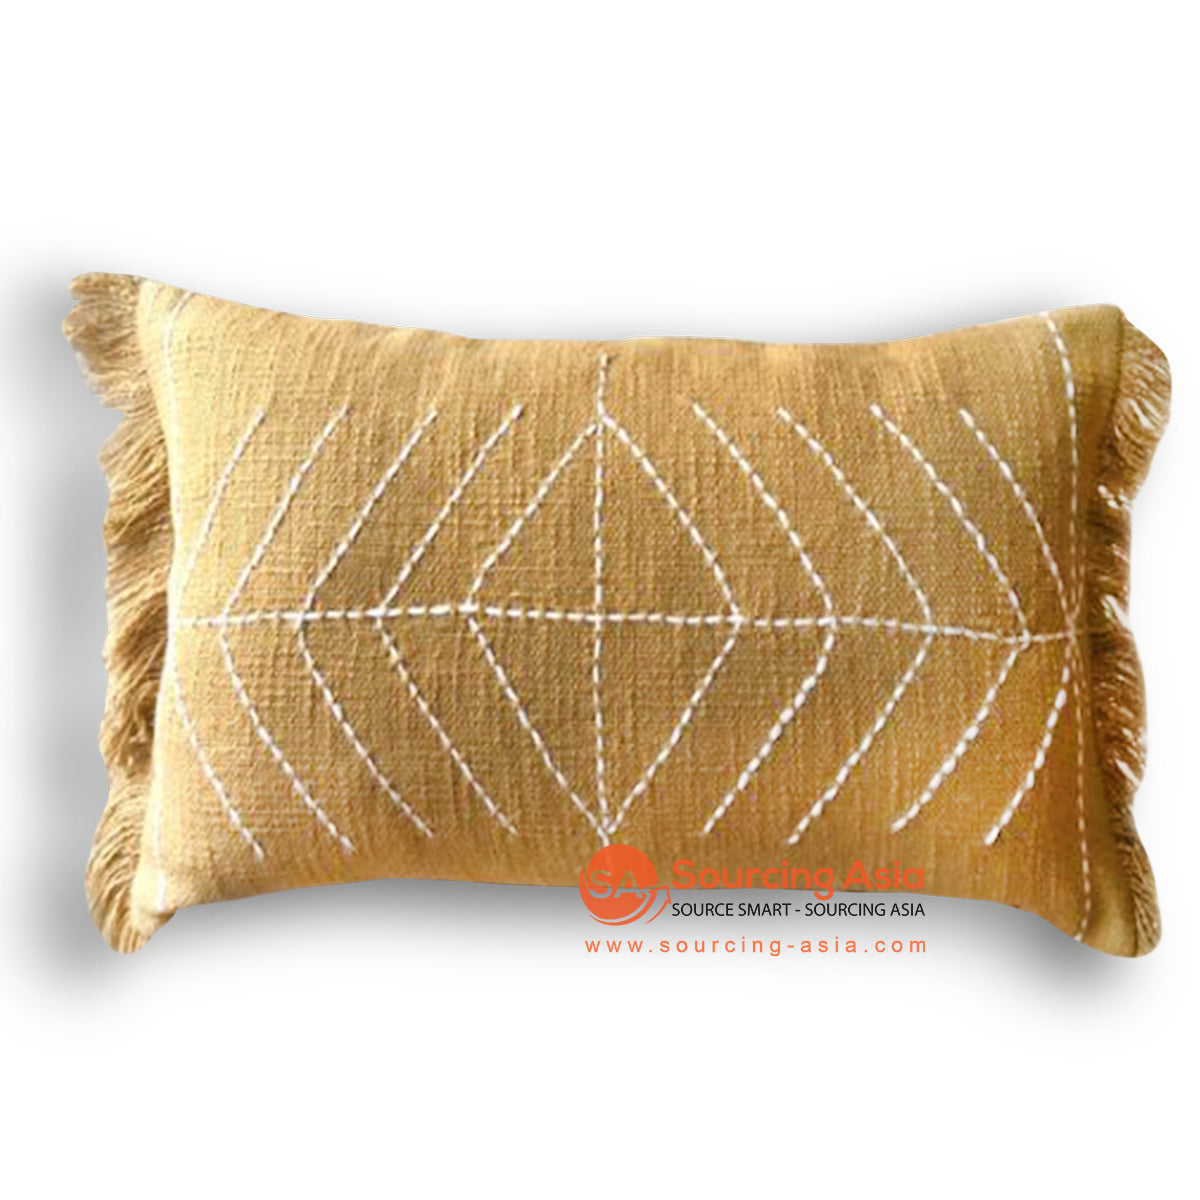 HIP020 HAND STITCHED COVER PILLOW WITH EMBROIDERY 50 X 25 CM